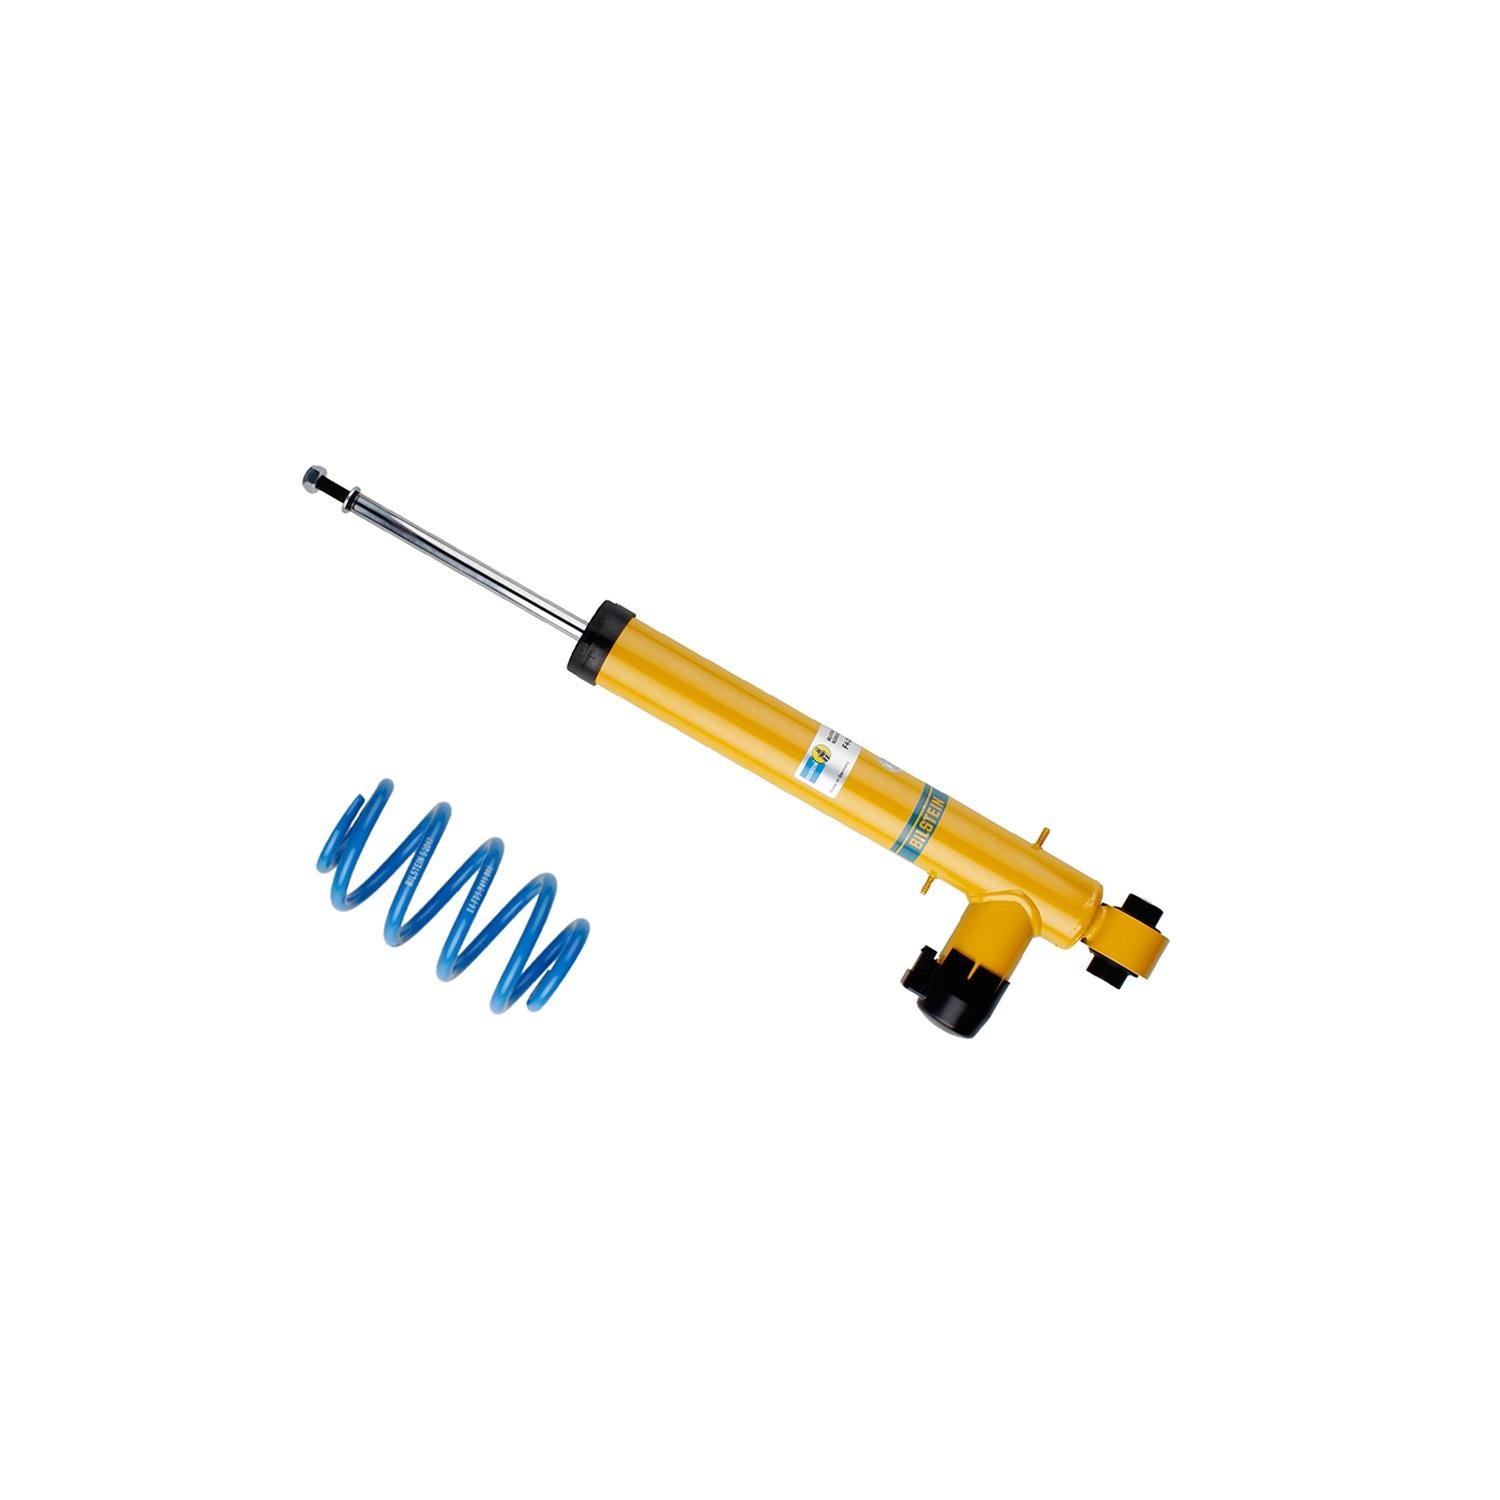 Bilstein B16 (DampTronic) Golf R Front and Rear Suspension Kit